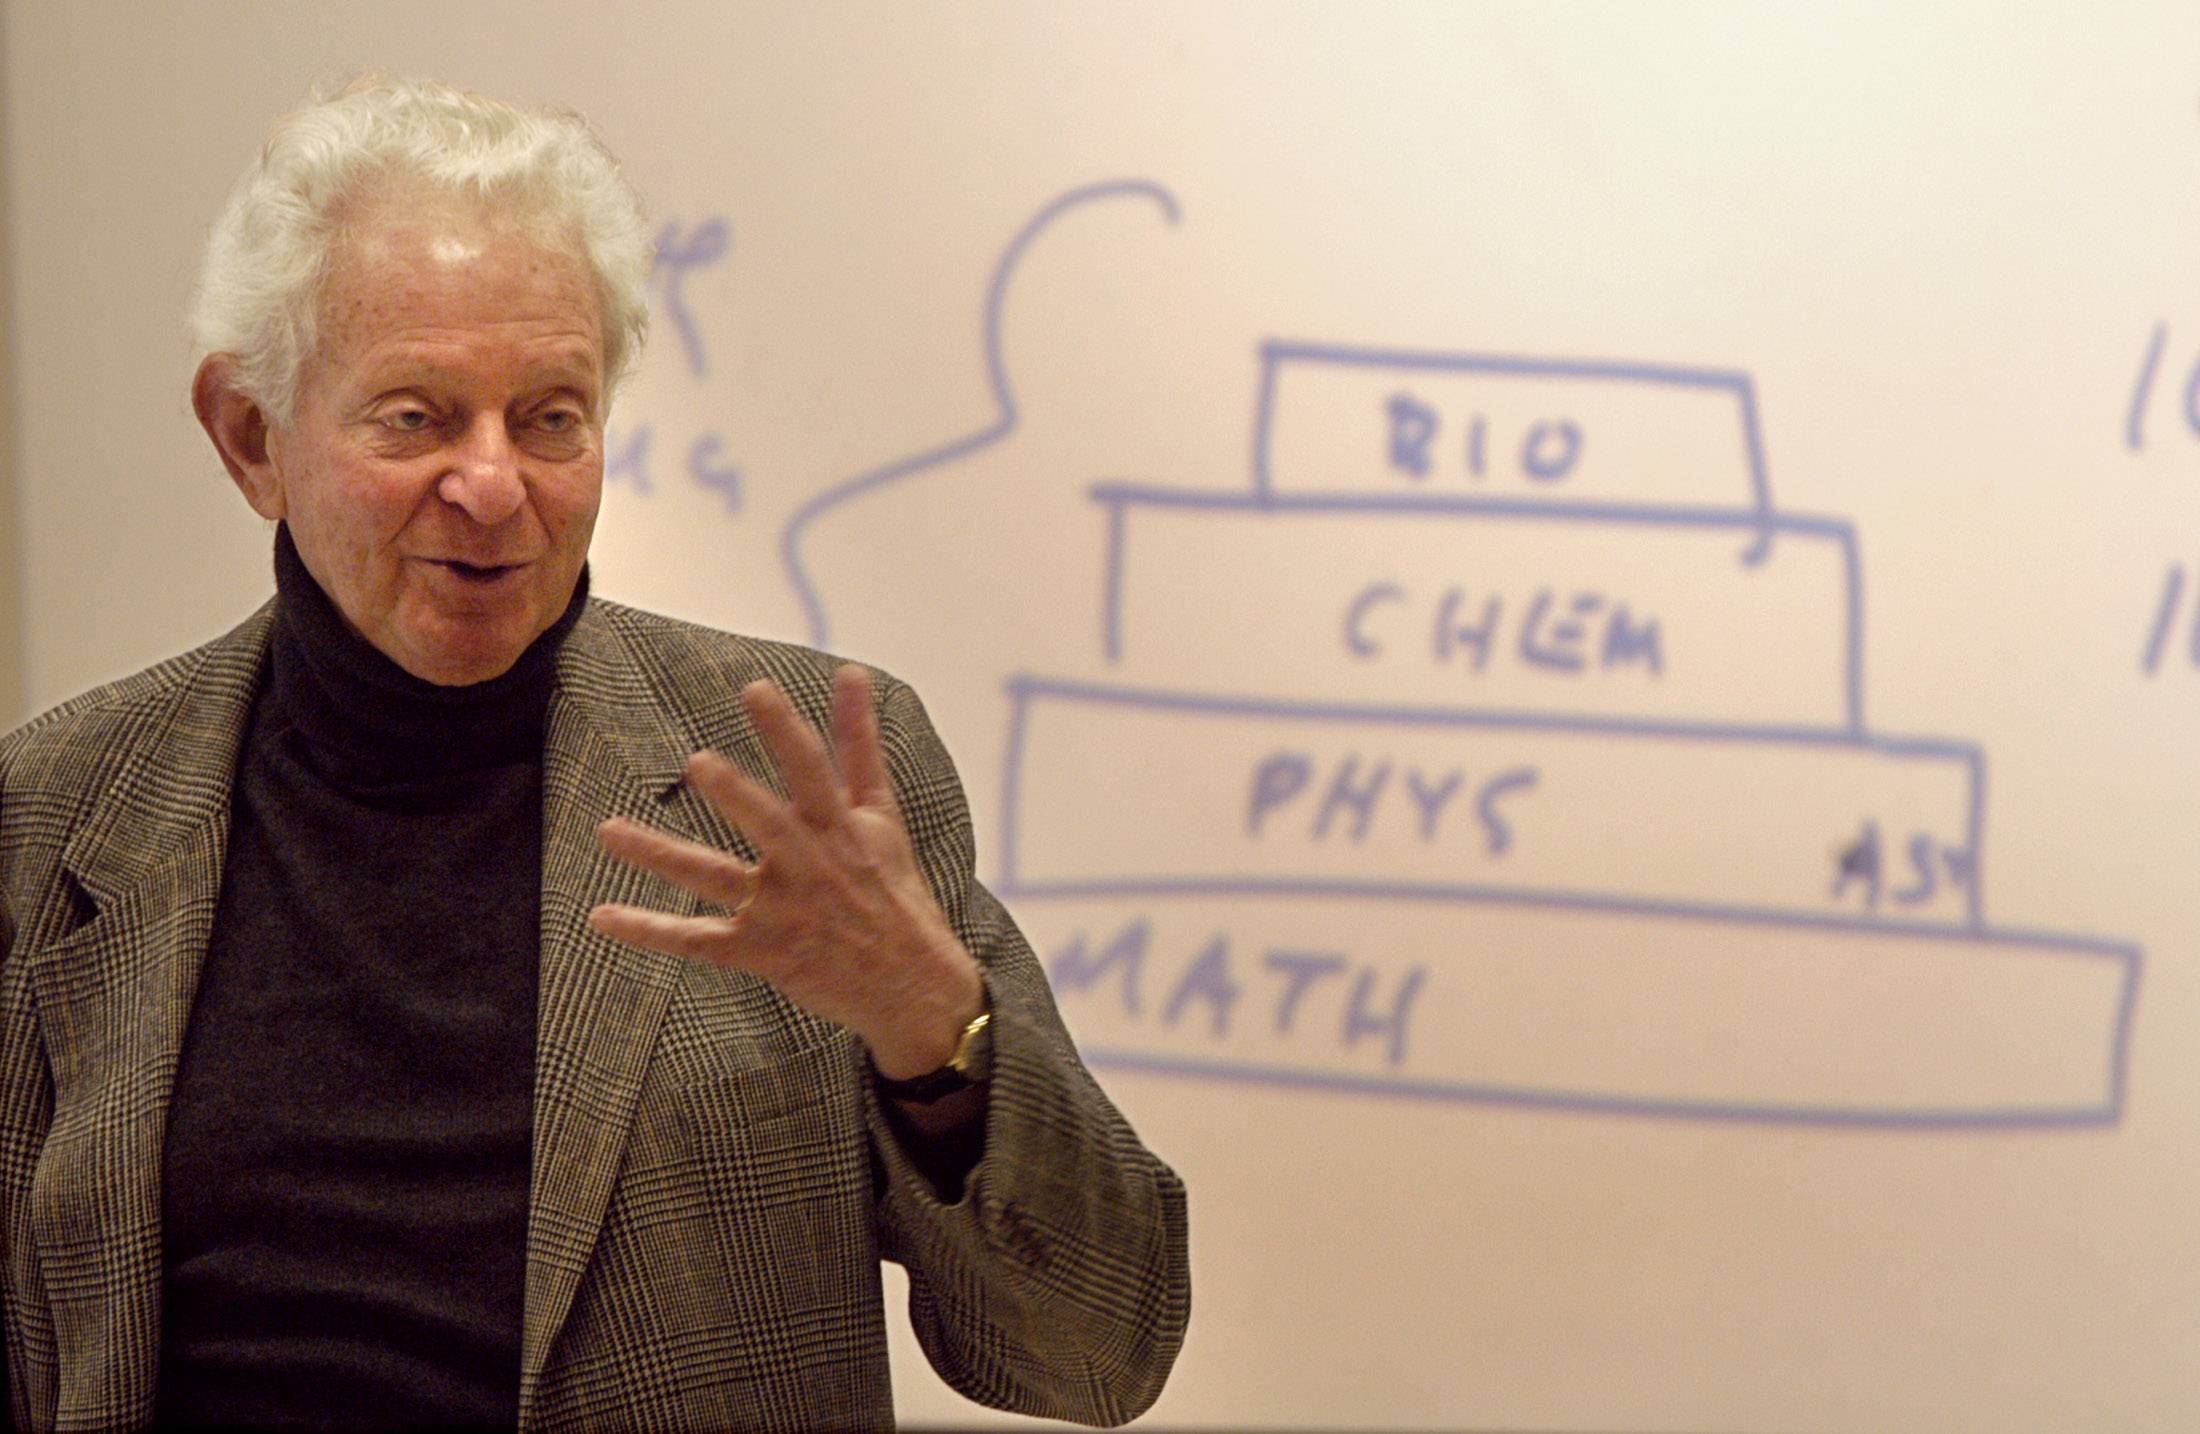 A Nobel Prize winner, Leon Lederman was director of Fermi National Accelerator Laboratory from 1978 to 1989.